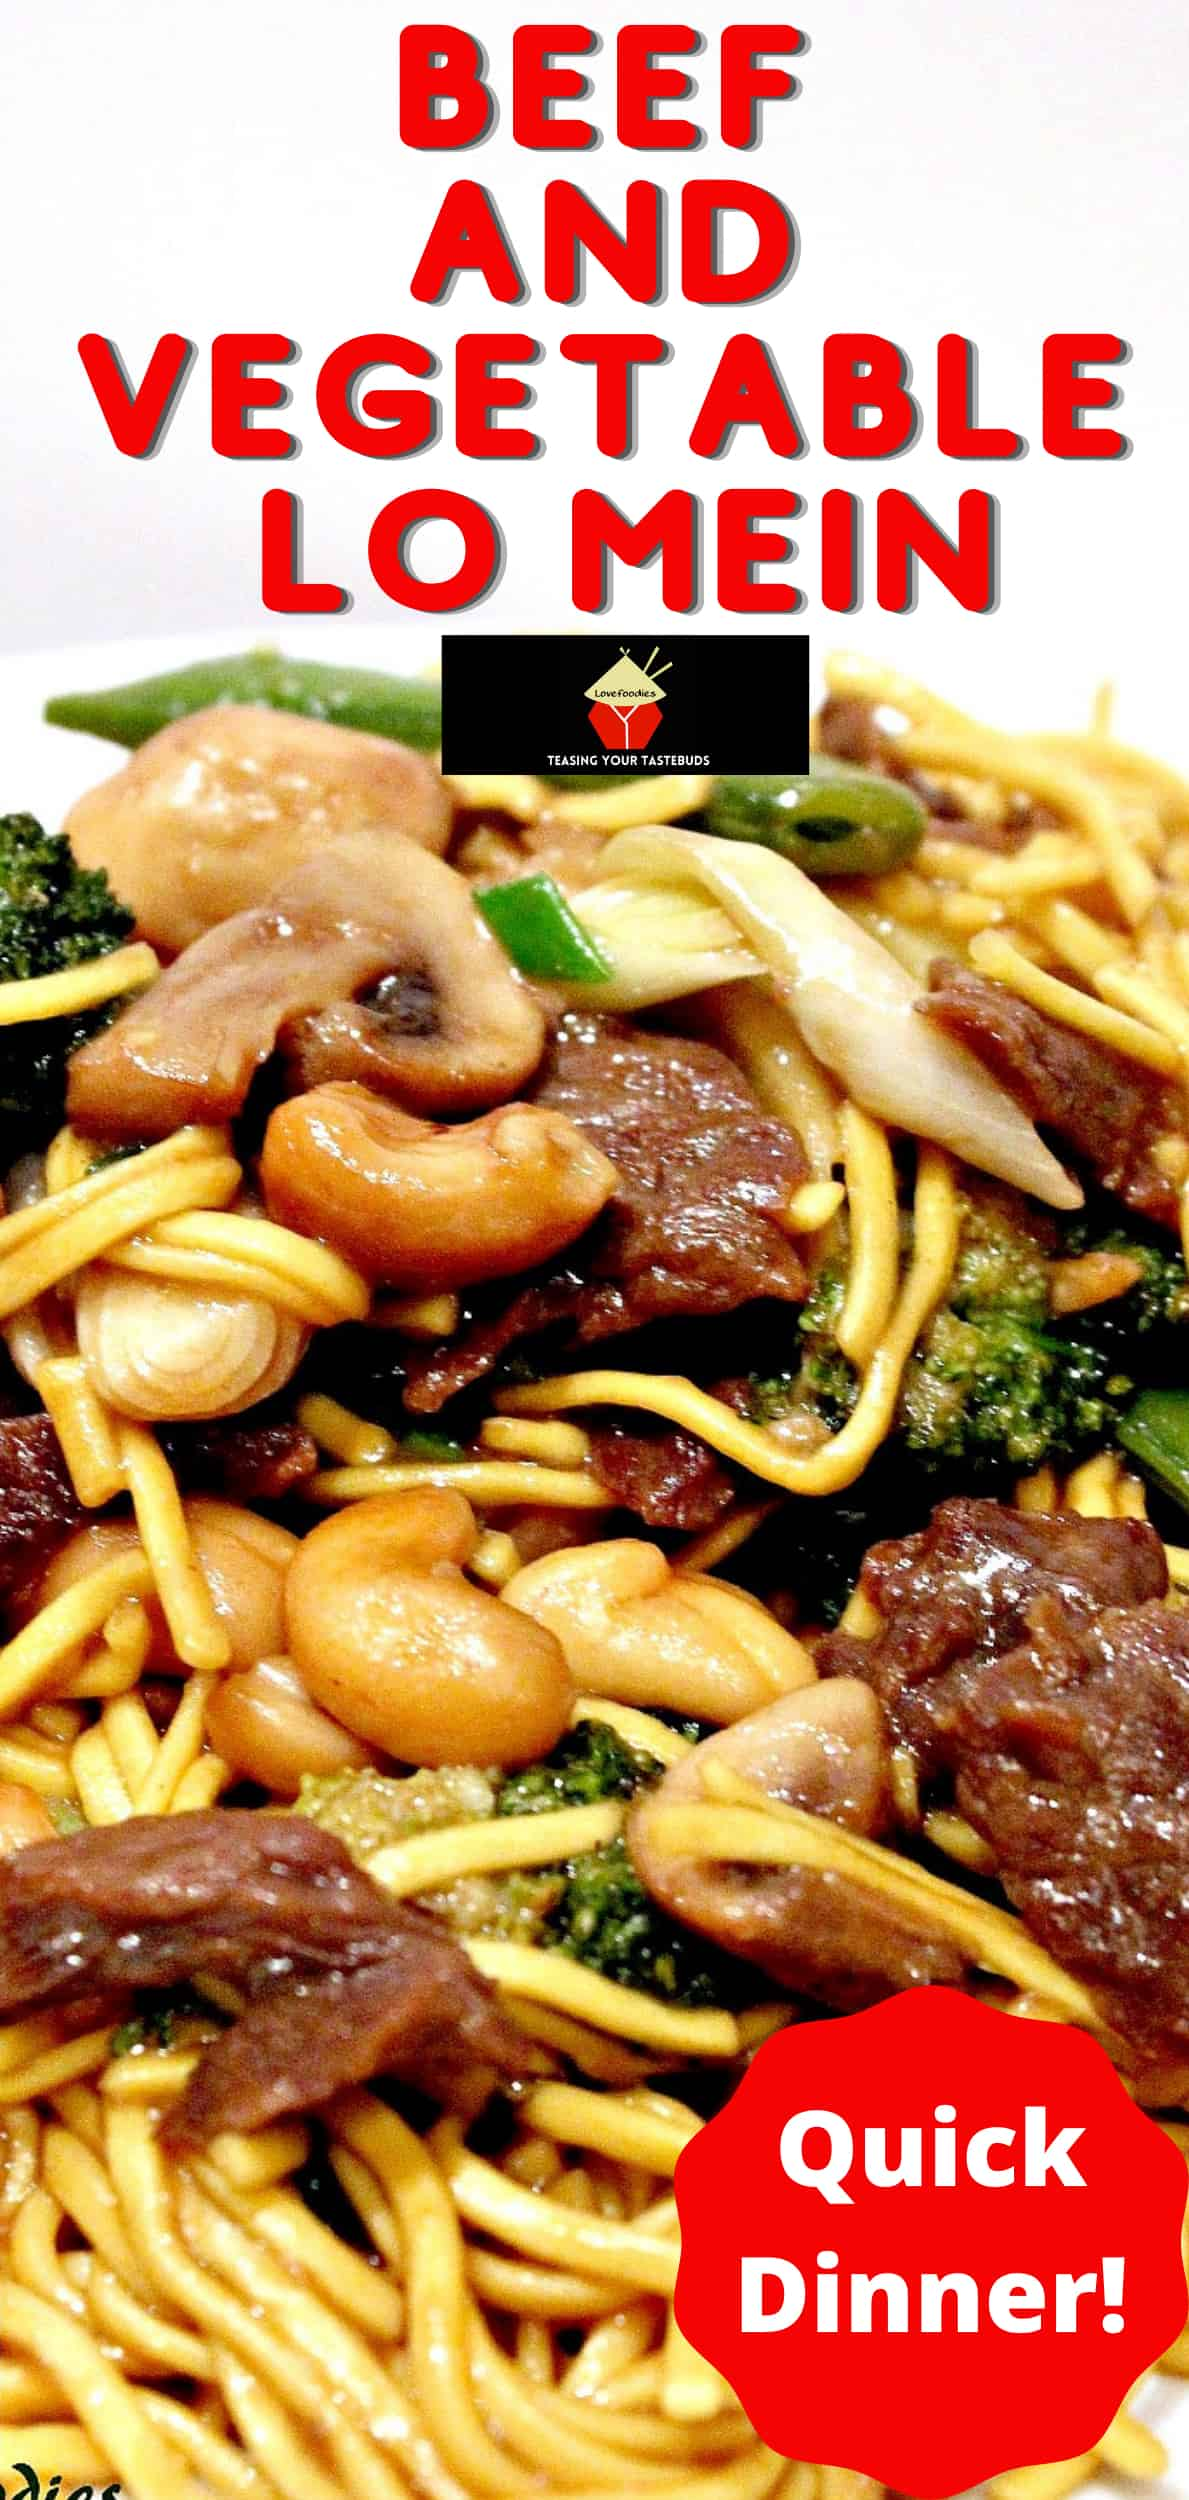 Beef and Vegetable Lo Mein. A quick and easy Chinese recipe using fresh ingredients. Tender beef, crisp vegetables and egg noodles all coated in a delicious Oriental sauce.